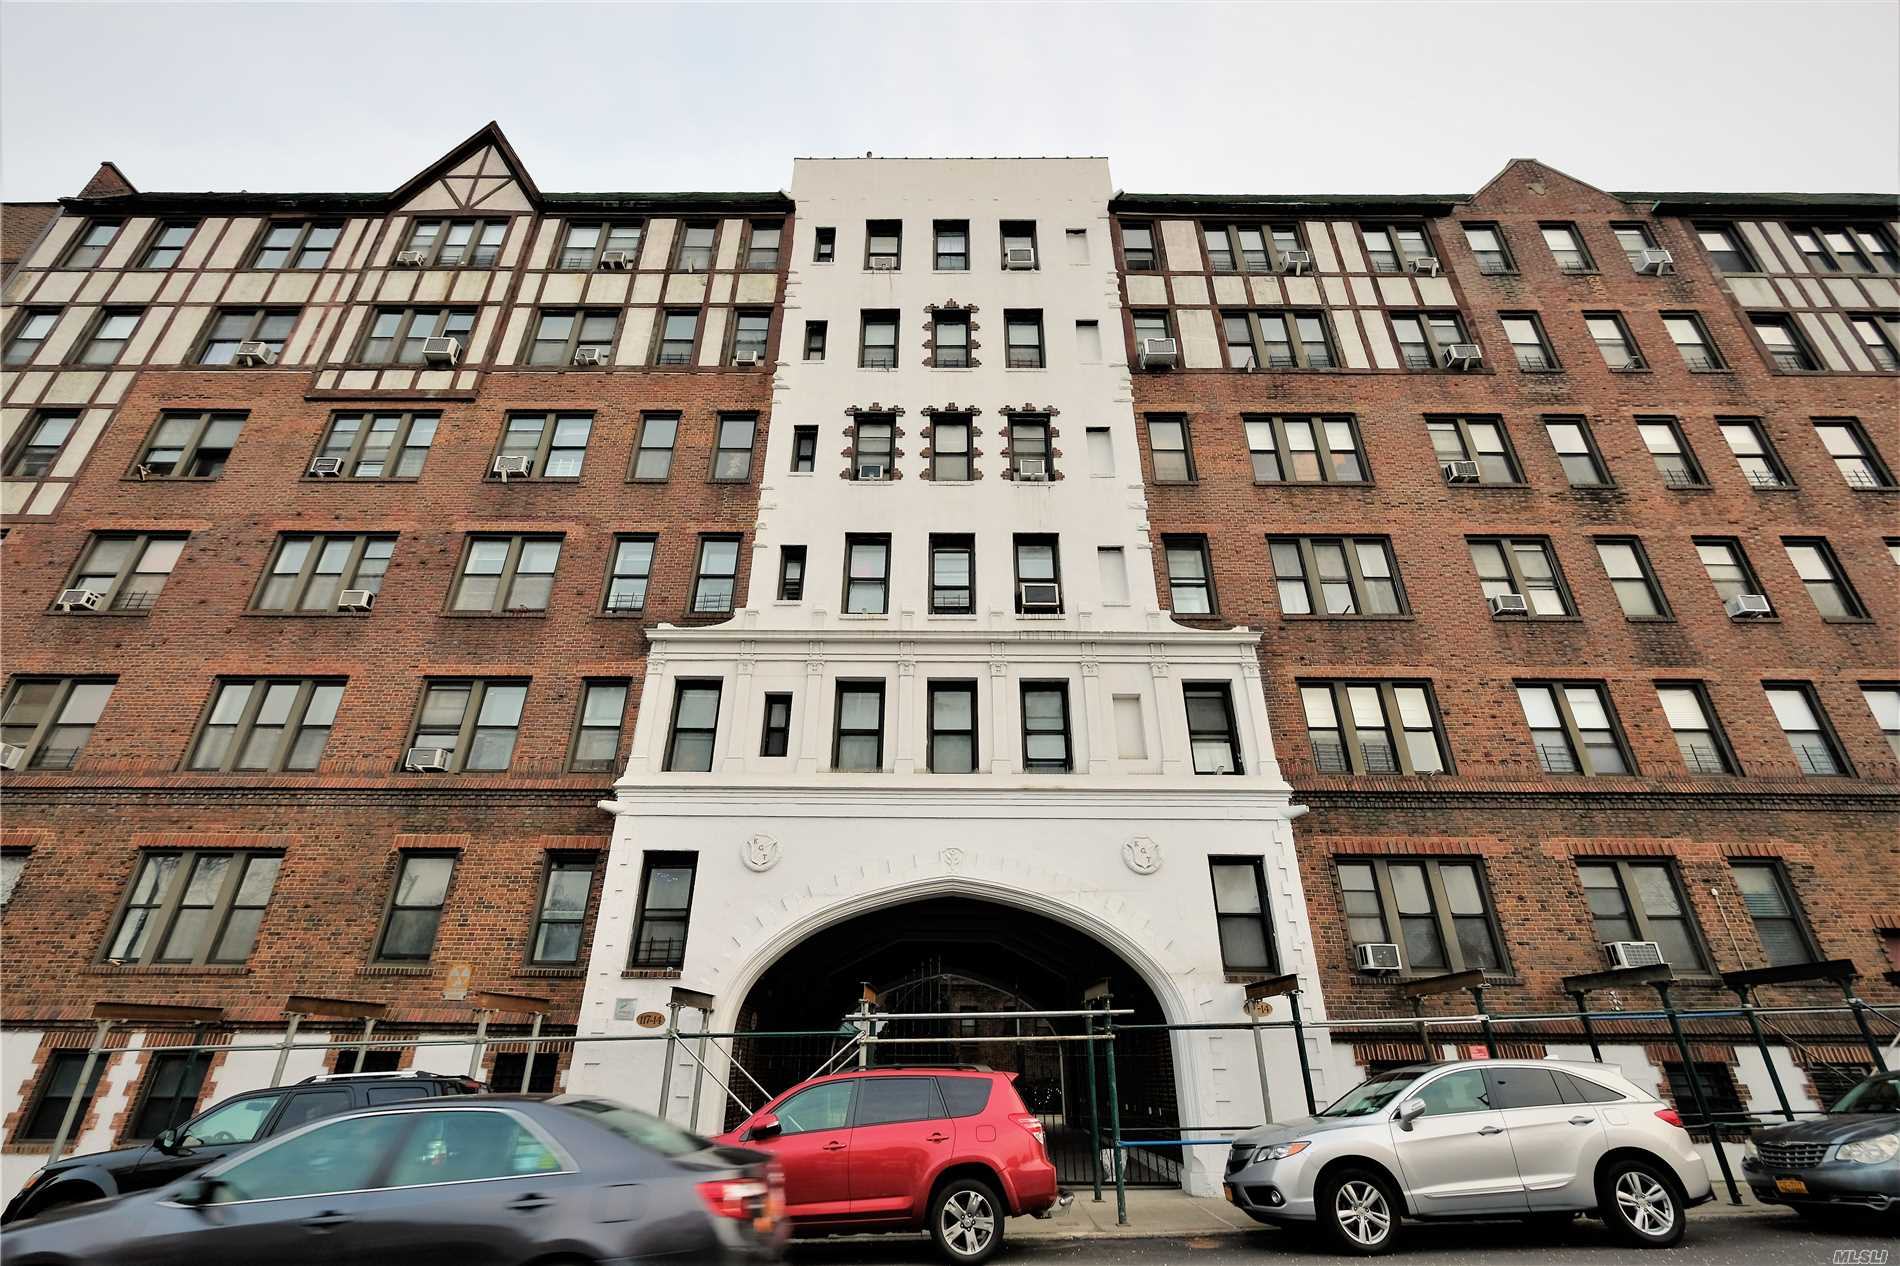 Pre War Oversize 1 Bedroom Jr4 With An Office/Den Next To The Kitchen. High 9 Ft Ceiling, Windows In Every Room. Hardwood Floors. Charming Old World Fixtures With Original Closets. Pet Friendly 2 Blocks To Express E/F Subway Station. 5 Blocks To Lirr Station.